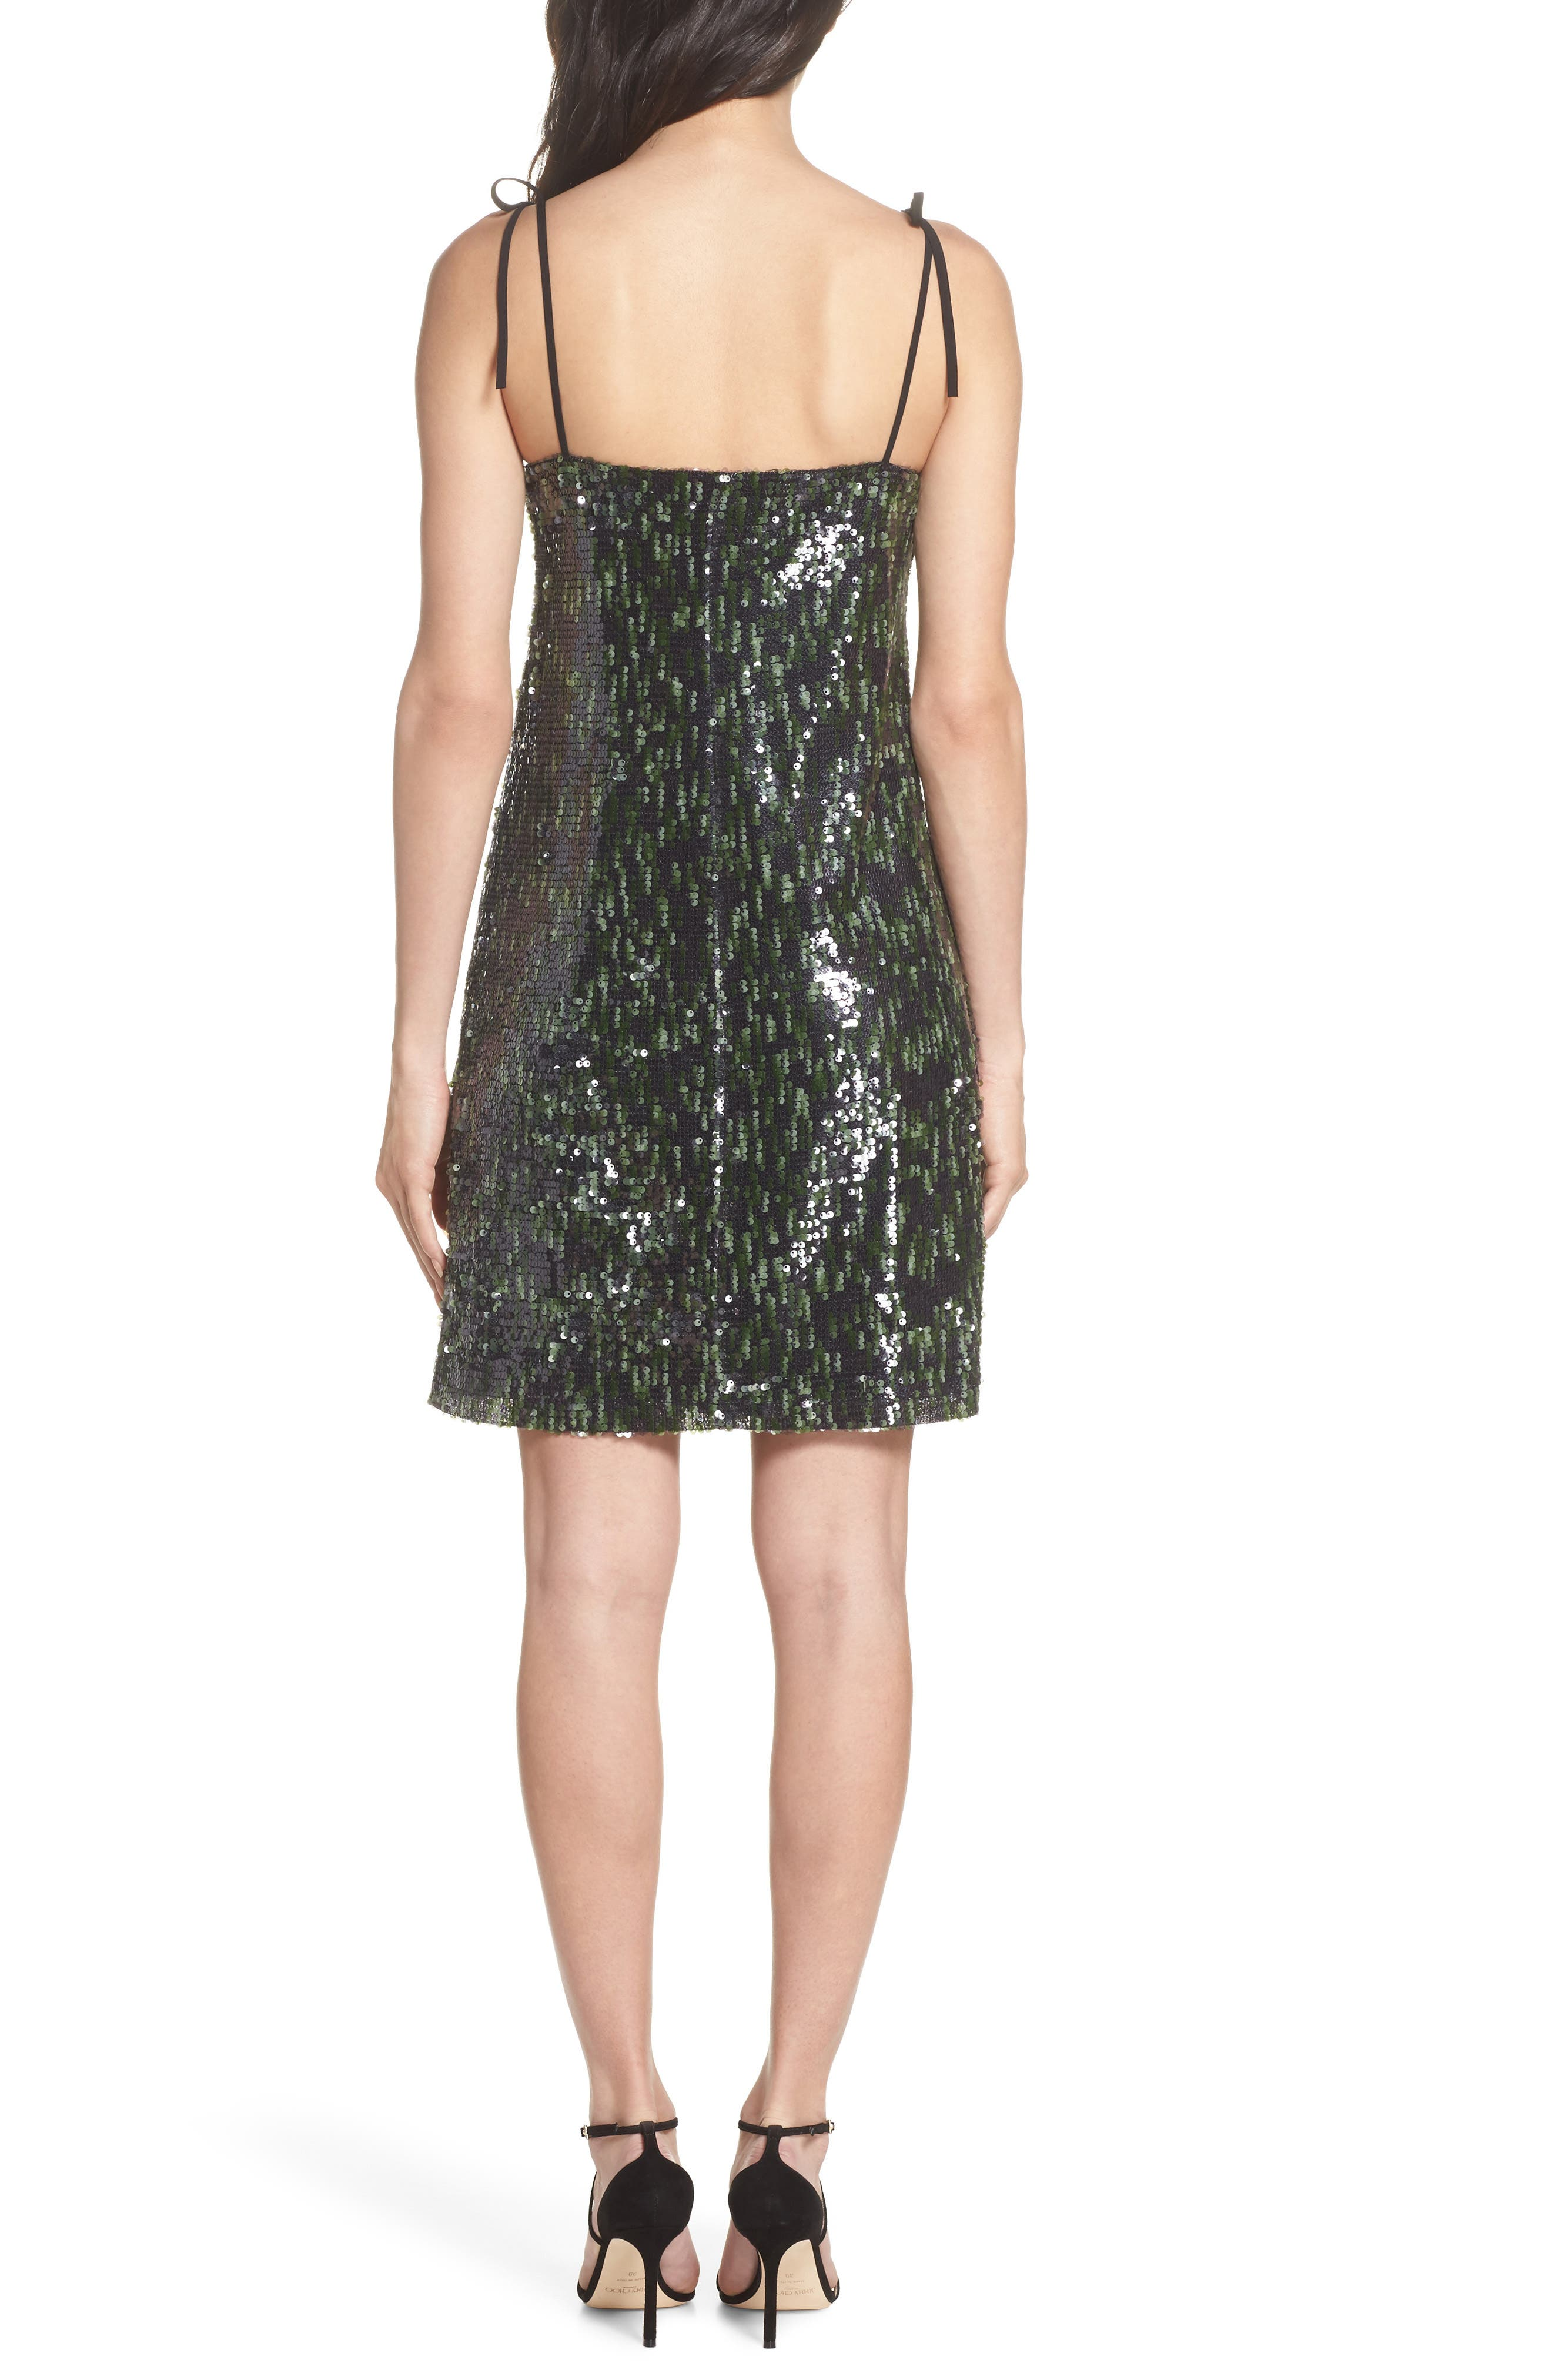 Camo Sequin Dress,                             Alternate thumbnail 2, color,                             Black/ Green